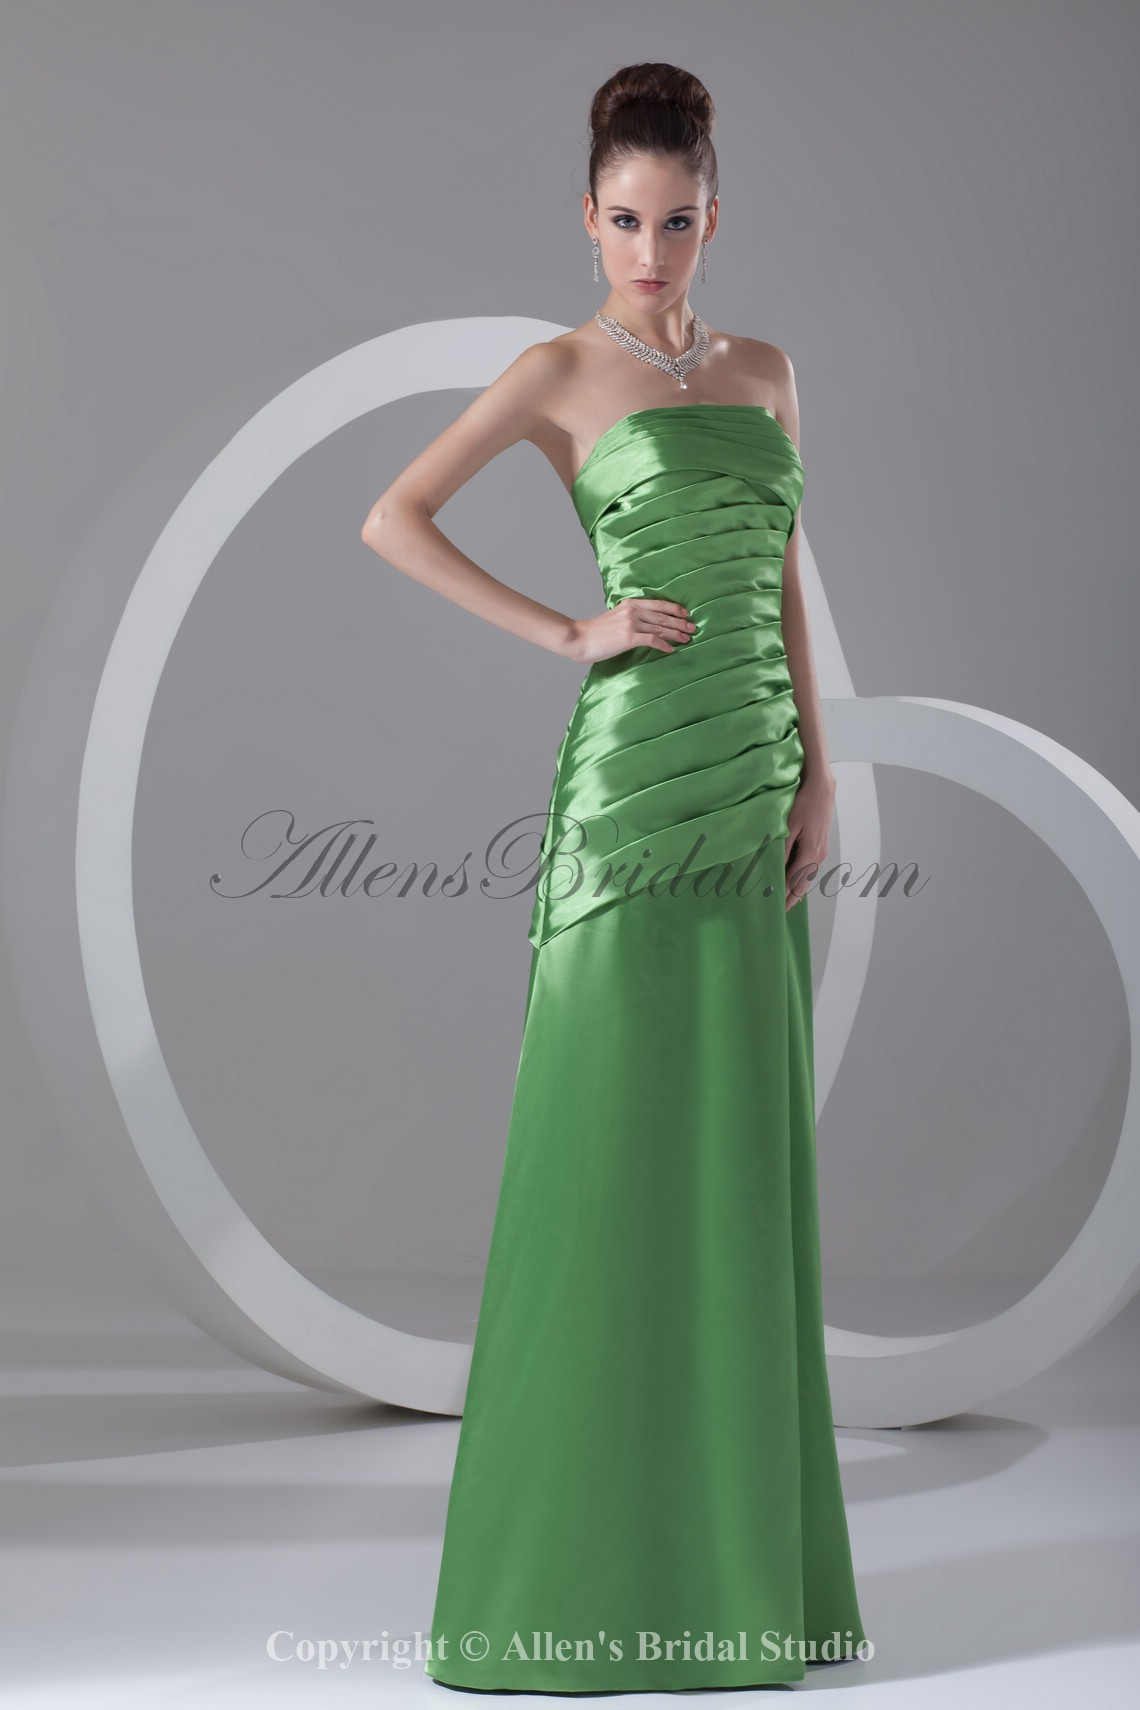 /455-3642/satin-strapless-neckline-floor-length-a-line-directionally-ruched-prom-dress.jpg